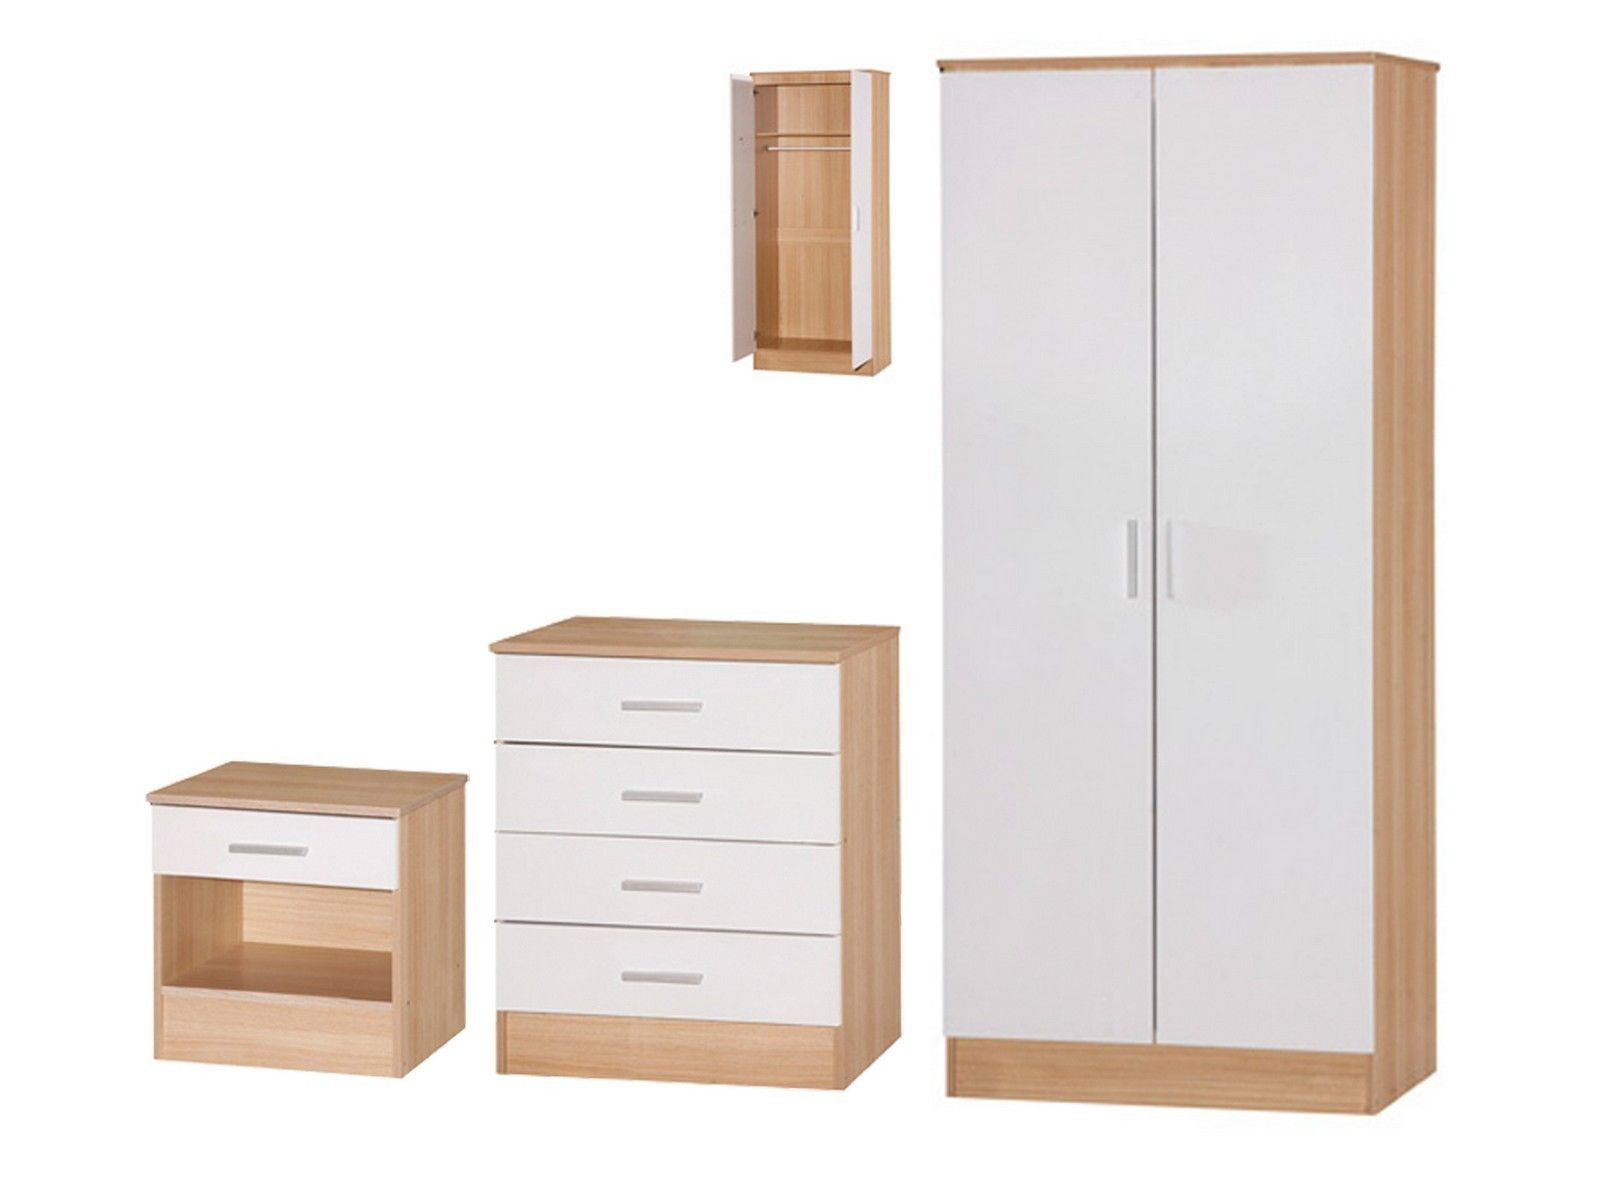 galaxy bedroom set 3 piece wardrobe chest bedside white oak high gloss. Black Bedroom Furniture Sets. Home Design Ideas